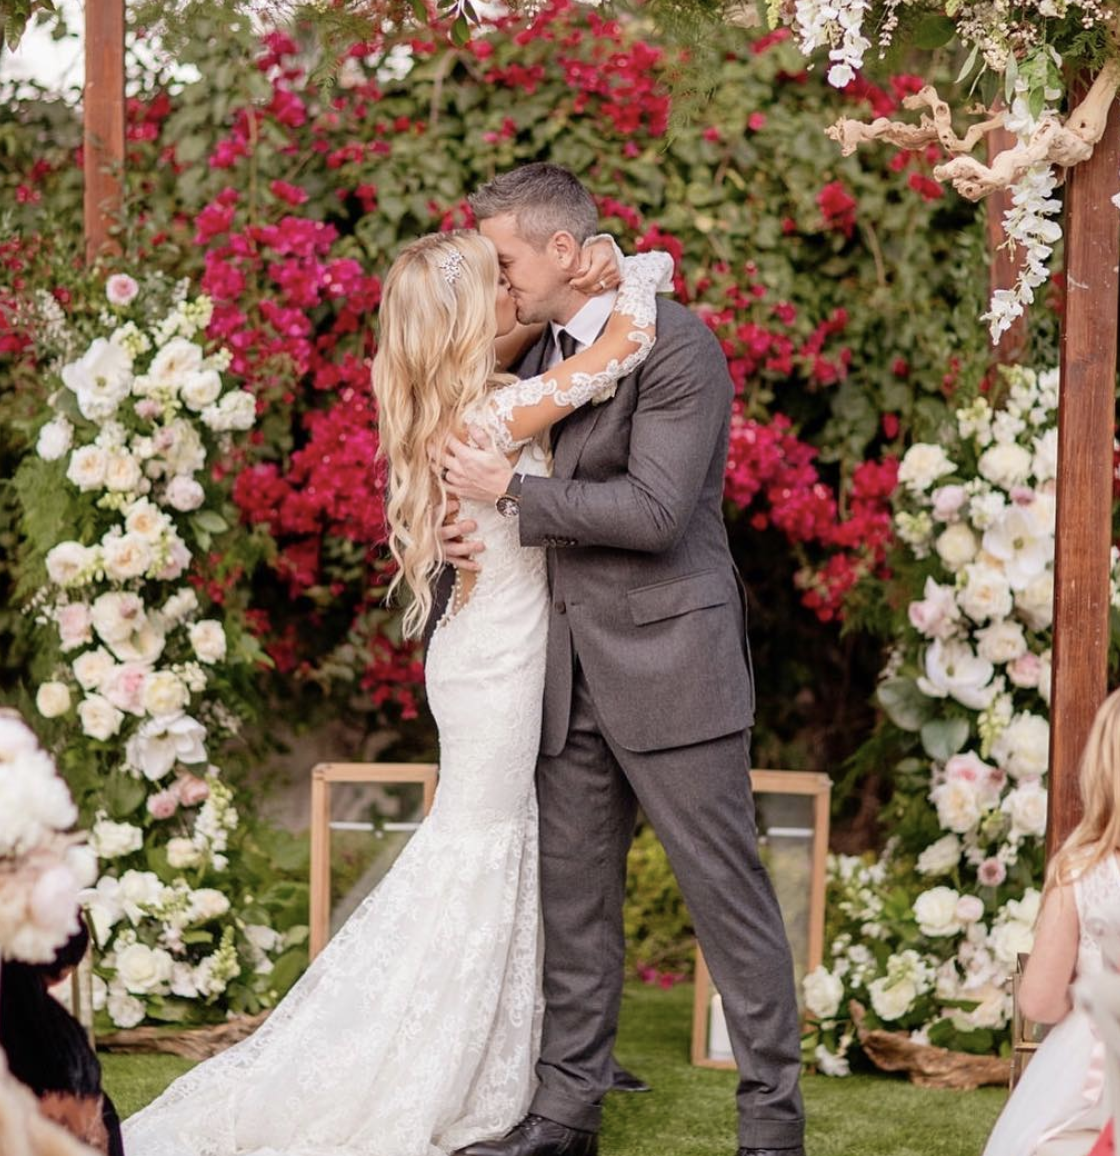 Here's How Christina Anstead Planned Her Super Secret Wedding in Just 40 Days